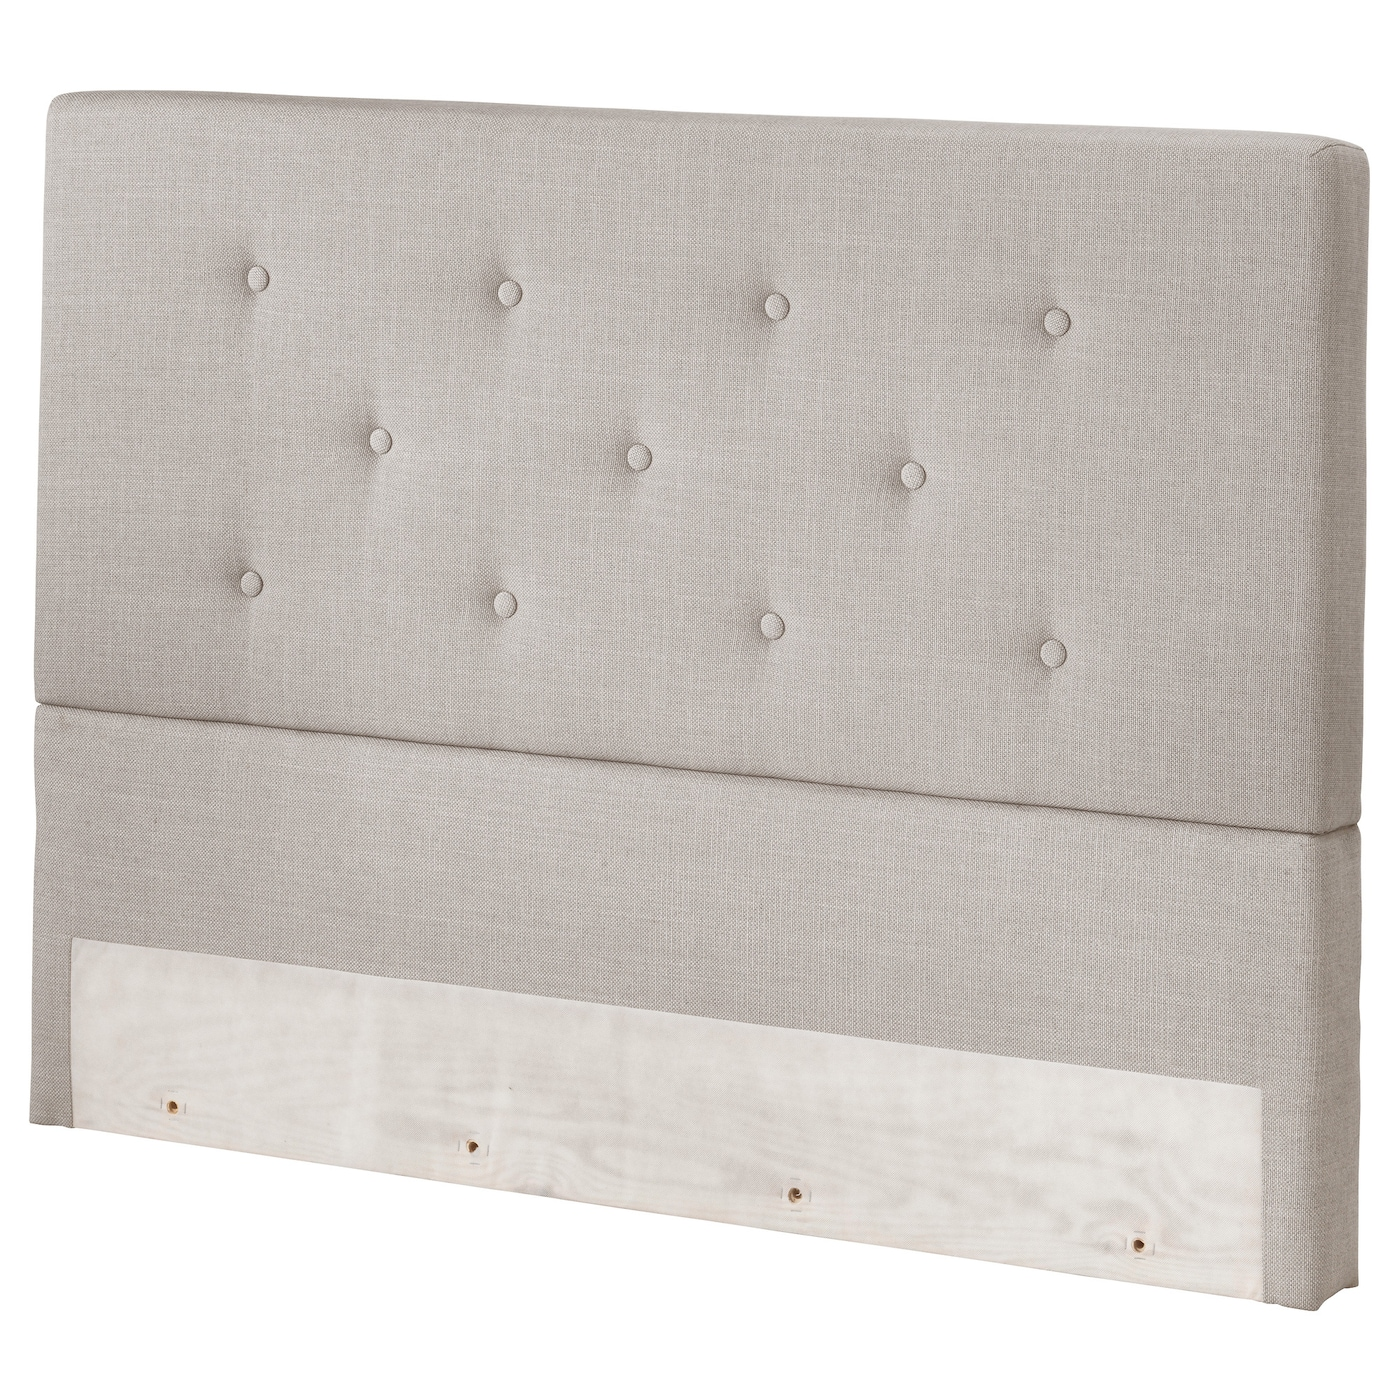 headboards  headboards with storage  ikea, Headboard designs